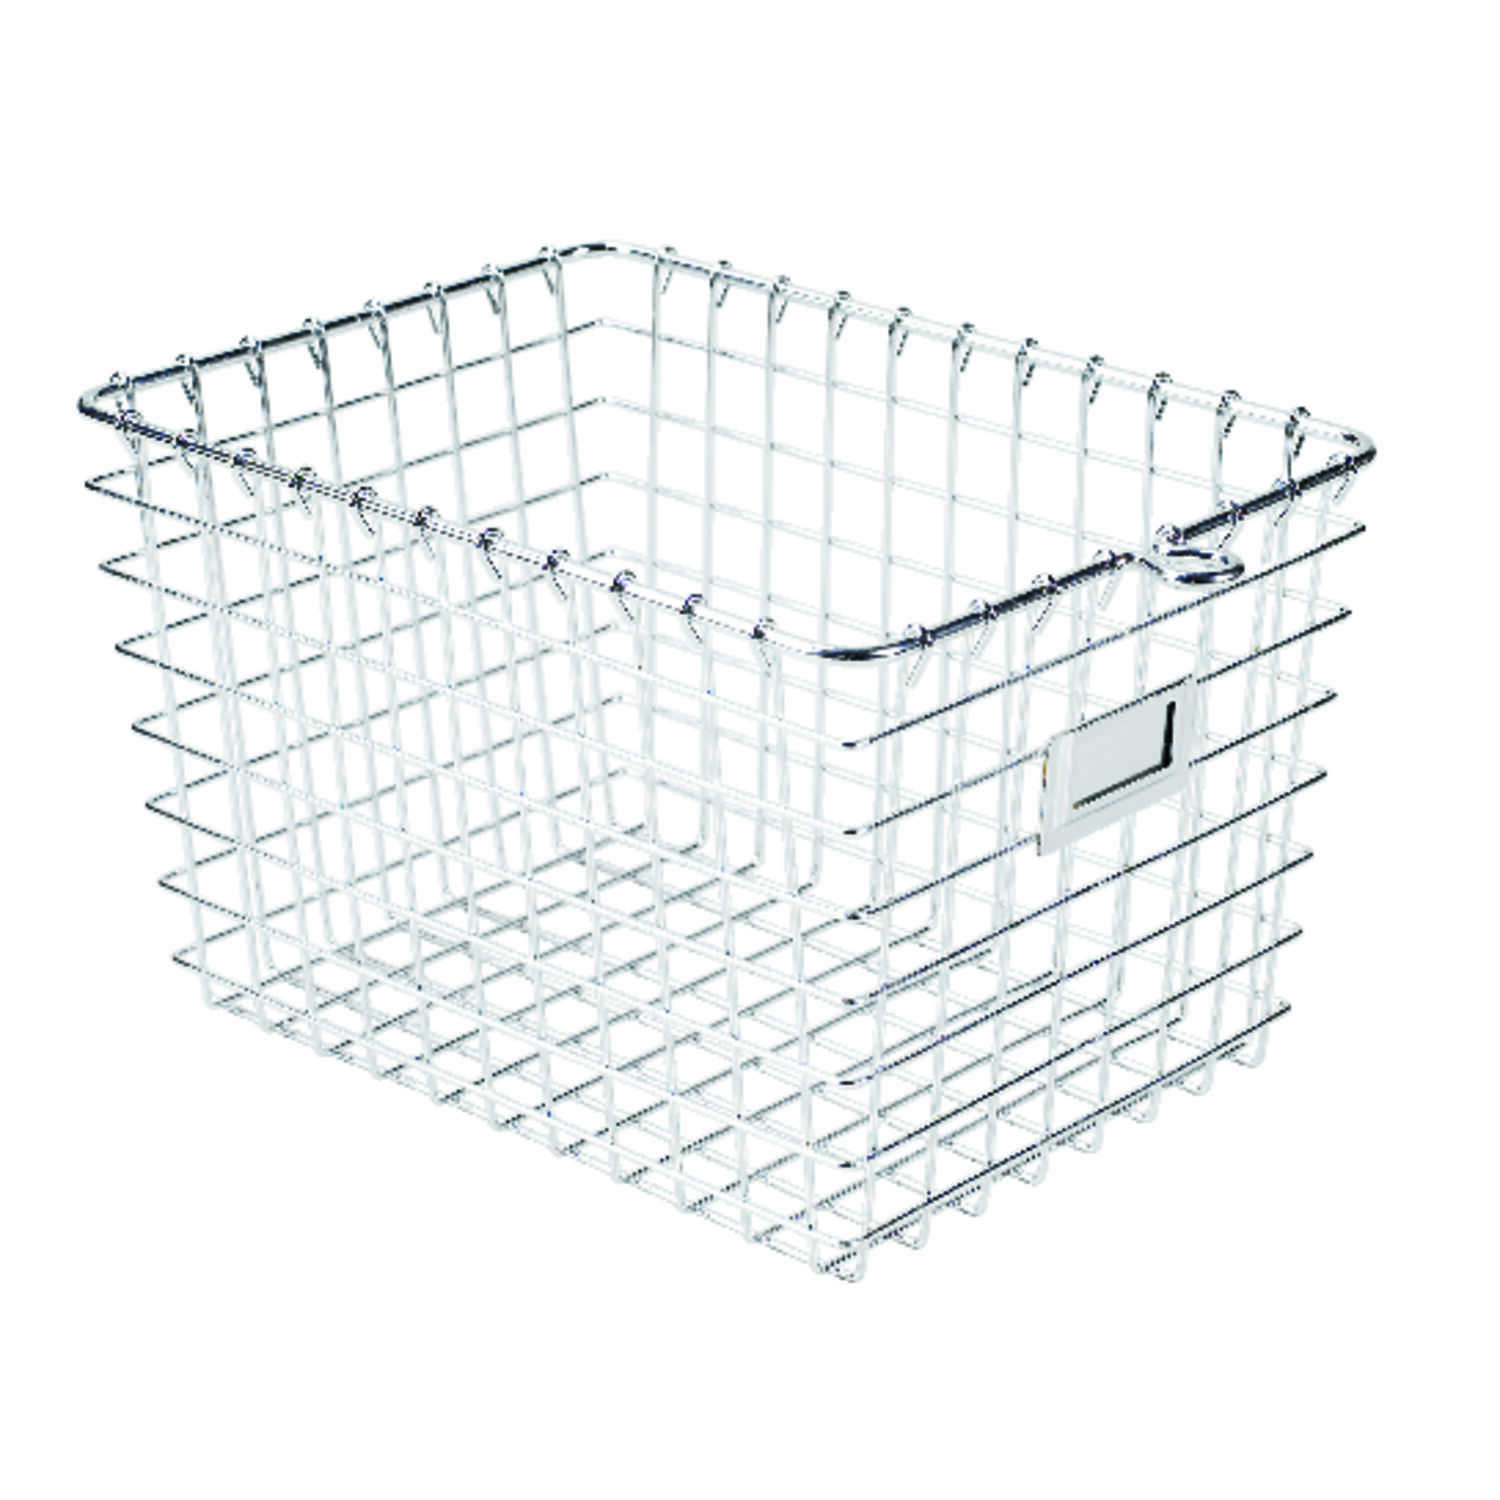 Spectrum  8 in. H x 8-7/8 in. W x 12-7/8 in. L Silver  Locker Basket